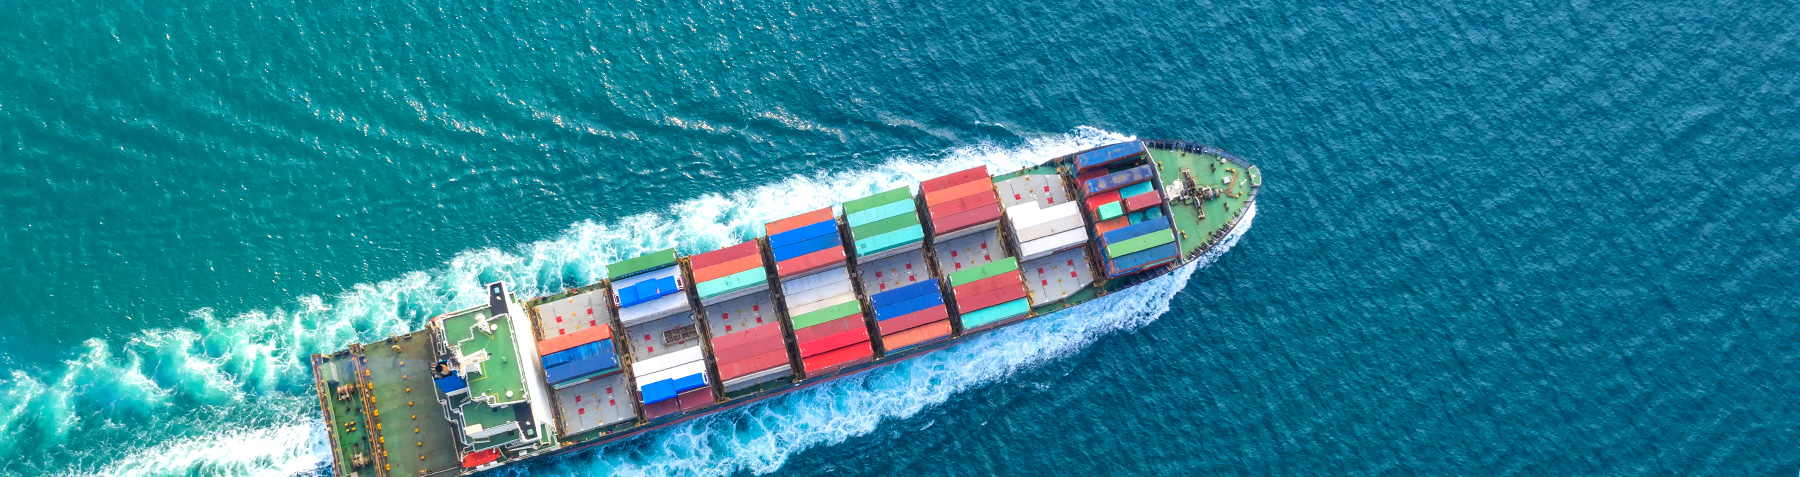 Global Logistical Connections All Risk Cargo insurance Calculator